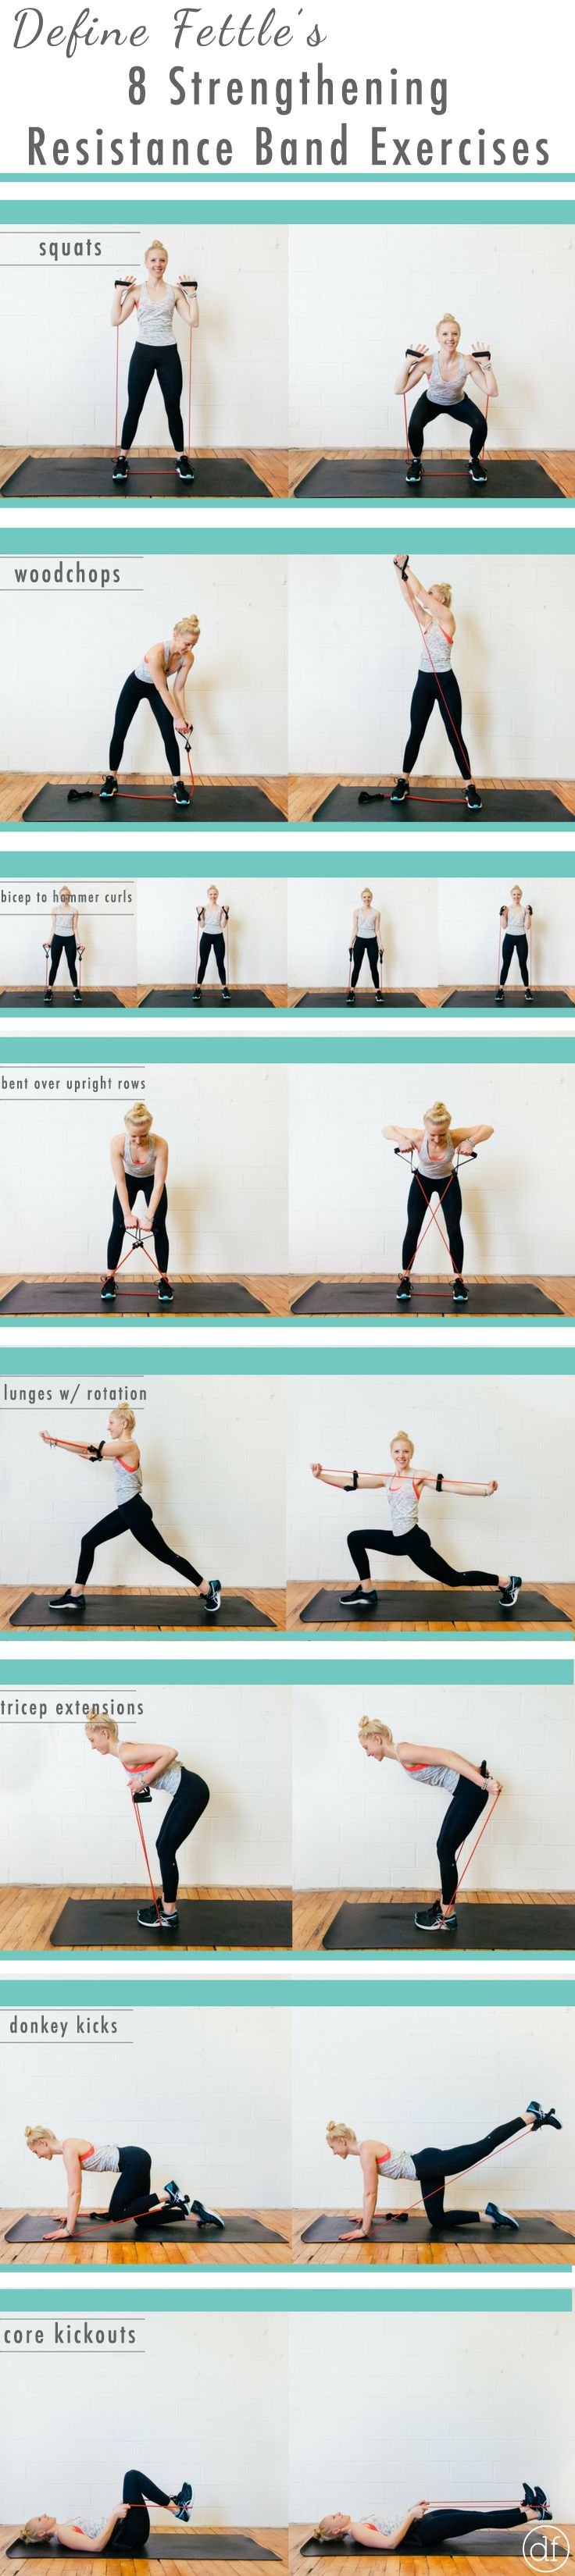 Home Workouts | Resistance Band Workouts | Strengthening Workouts | <30 Minutes | Exercise | Define Fettle